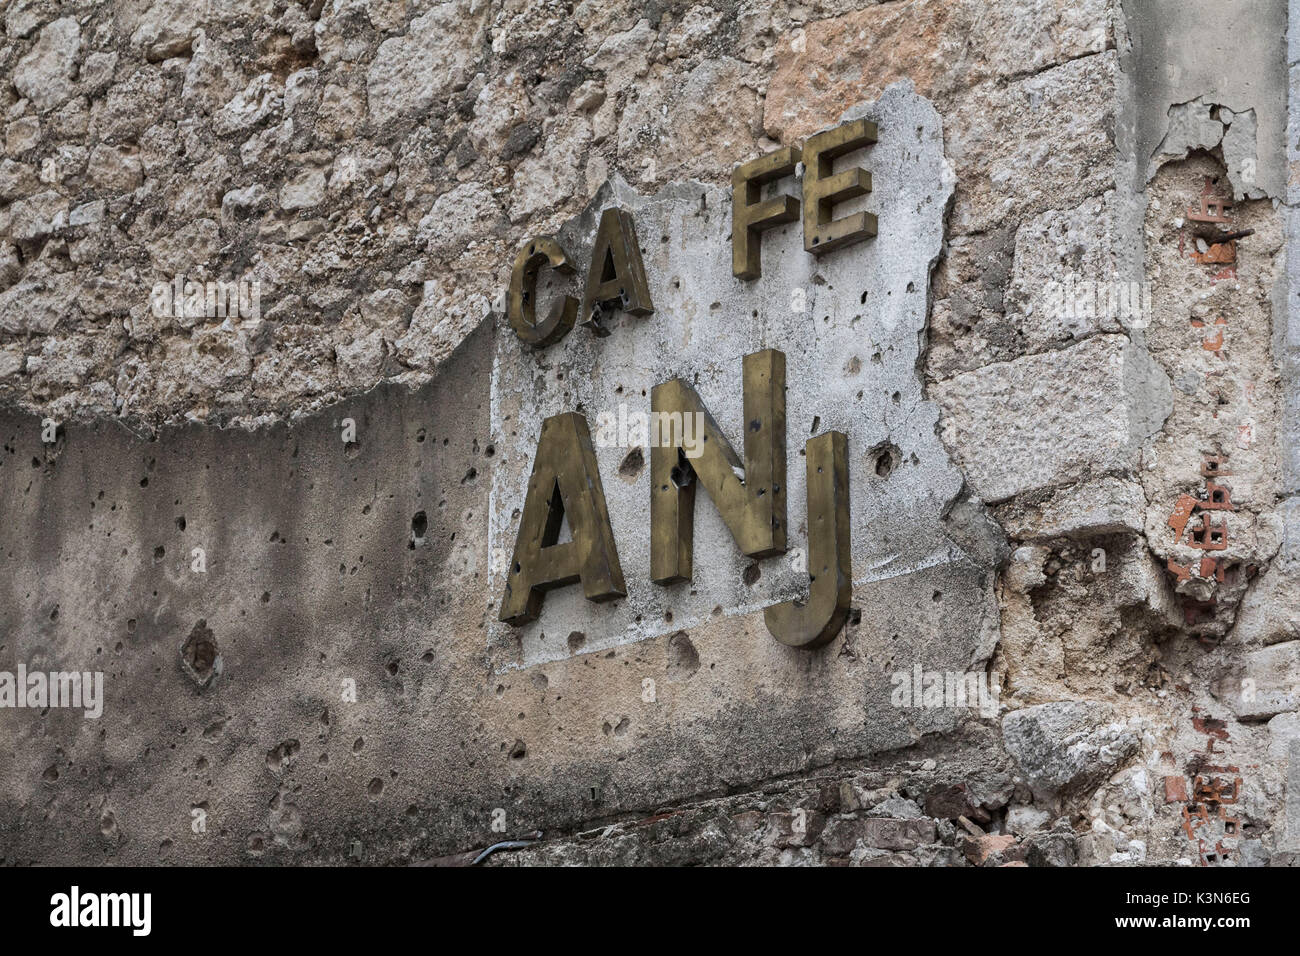 Eastern Europe, Mostar, Bosnia and Herzegovina.  The marks of war in the Balkans on the walls of the city. - Stock Image